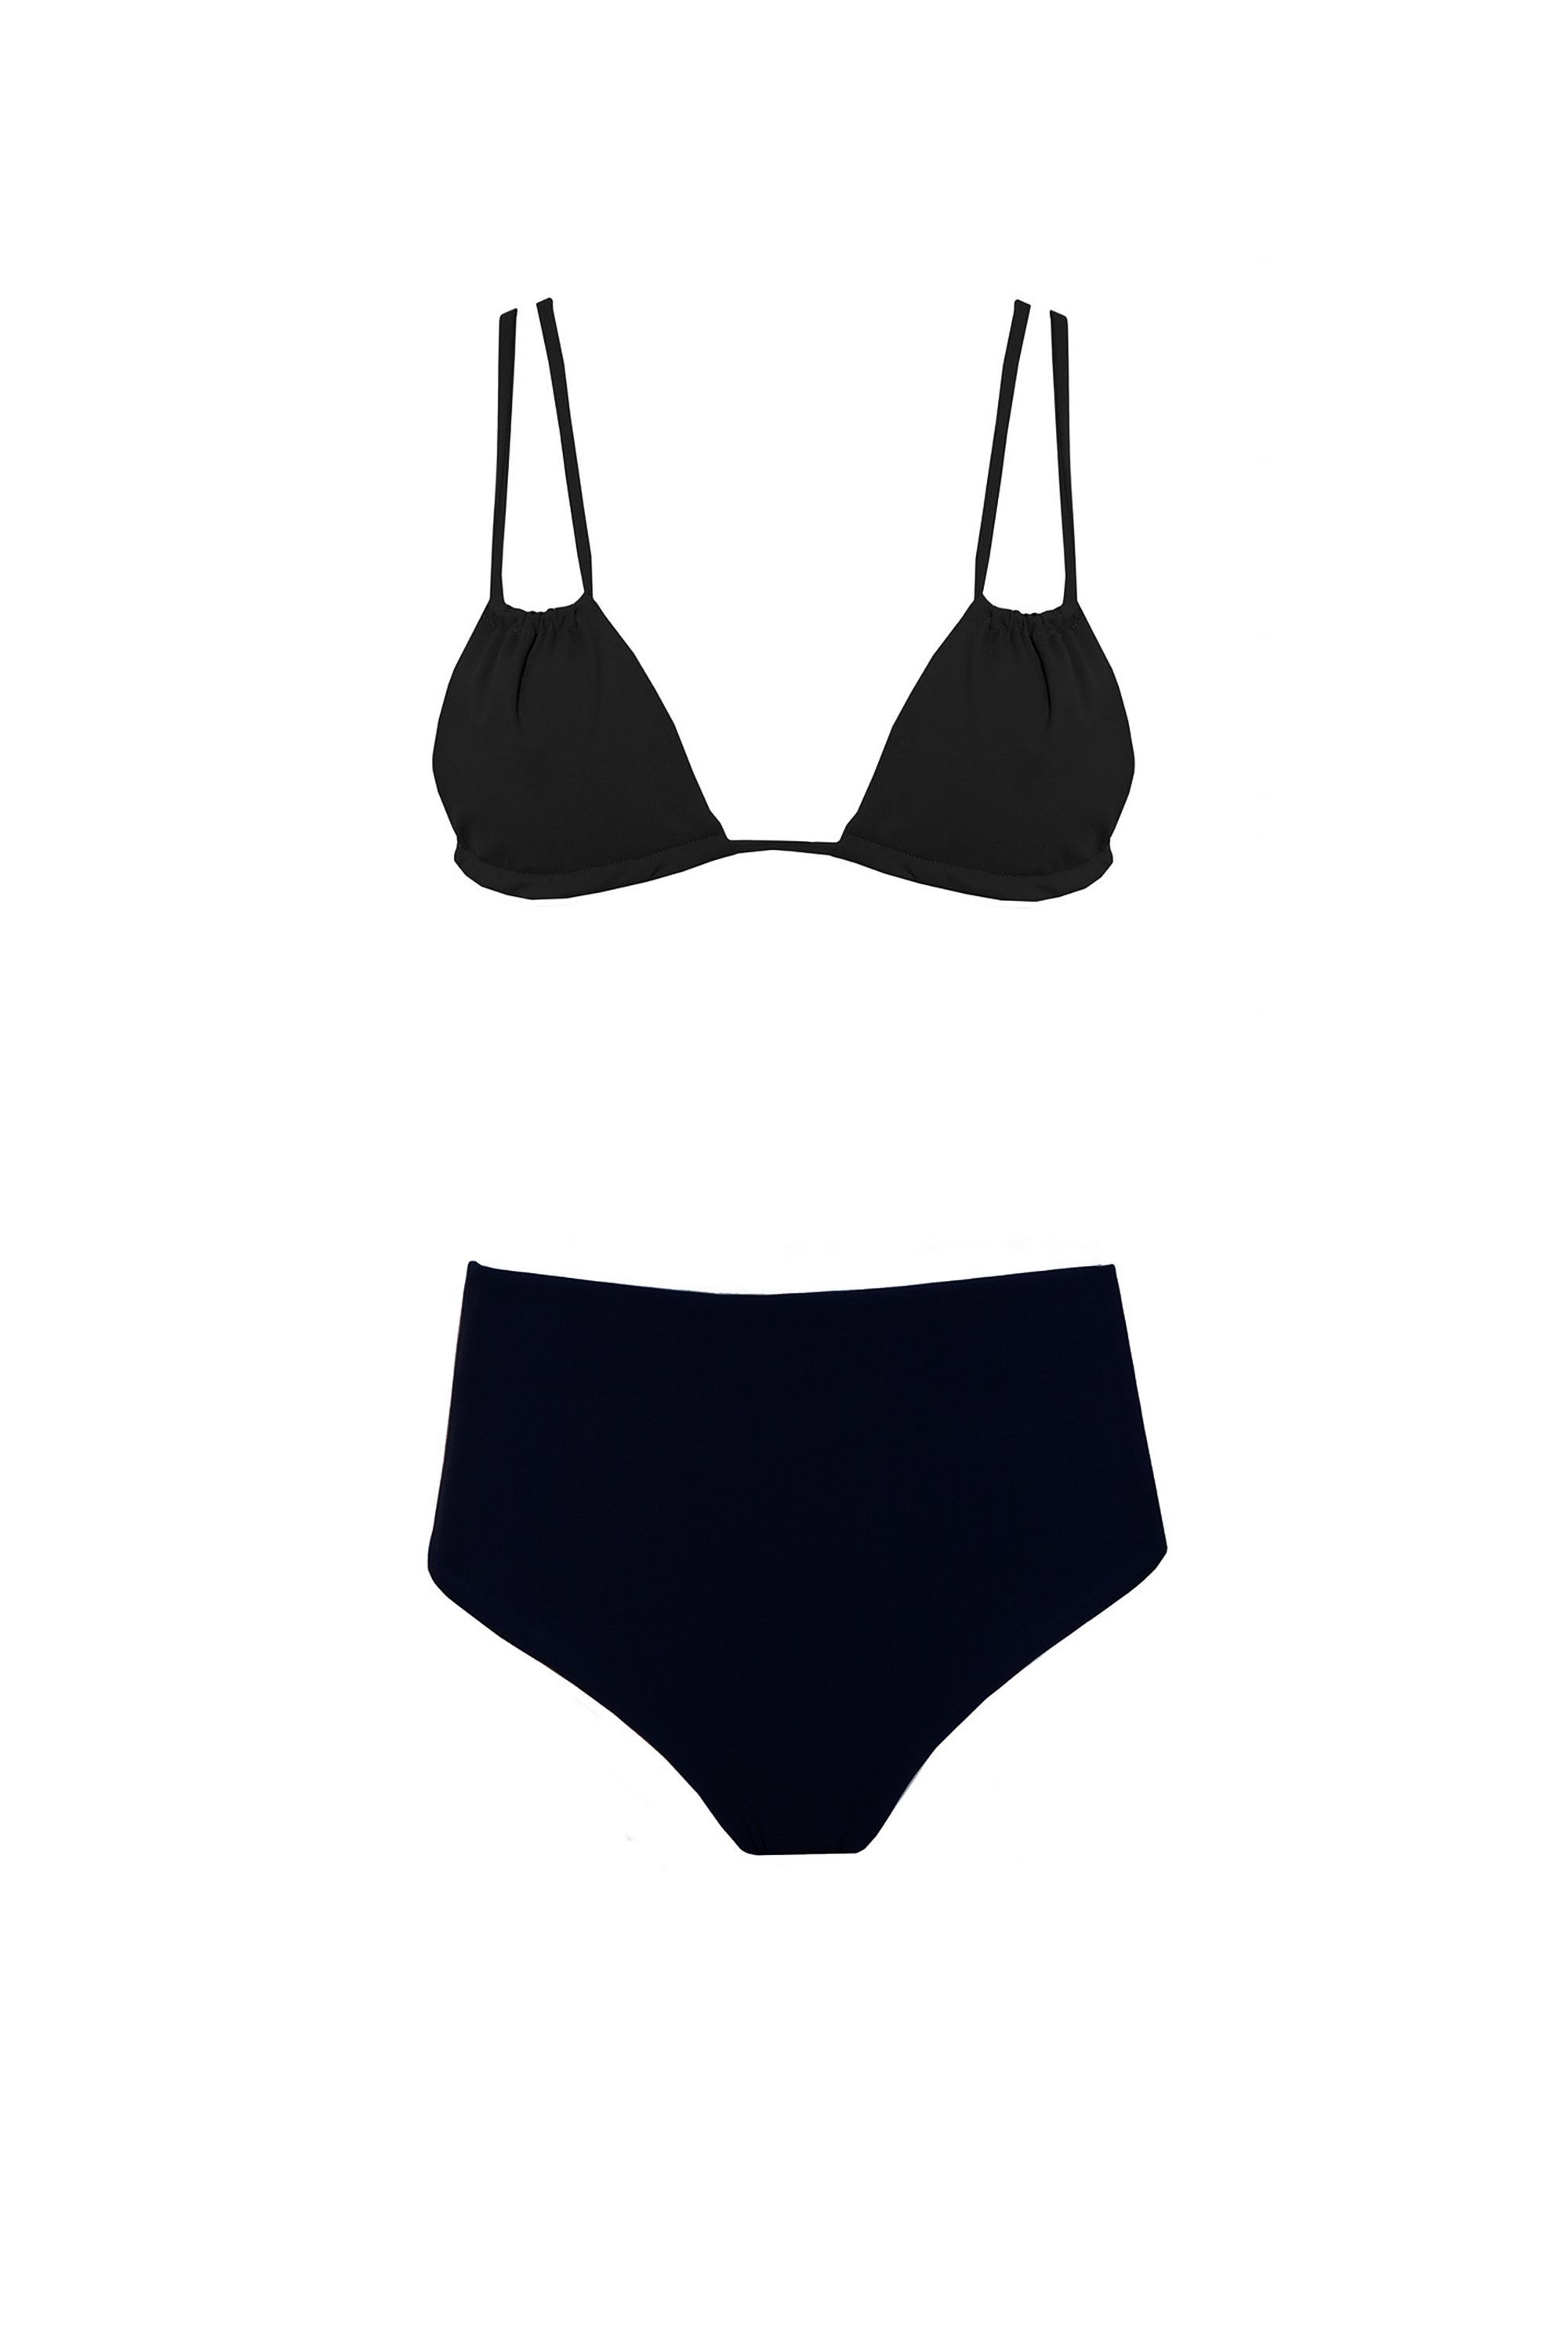 cb23f4ccba53d8 23 Flattering High Waisted Bikinis for 2017- Retro High-Waisted Style  Swimsuits